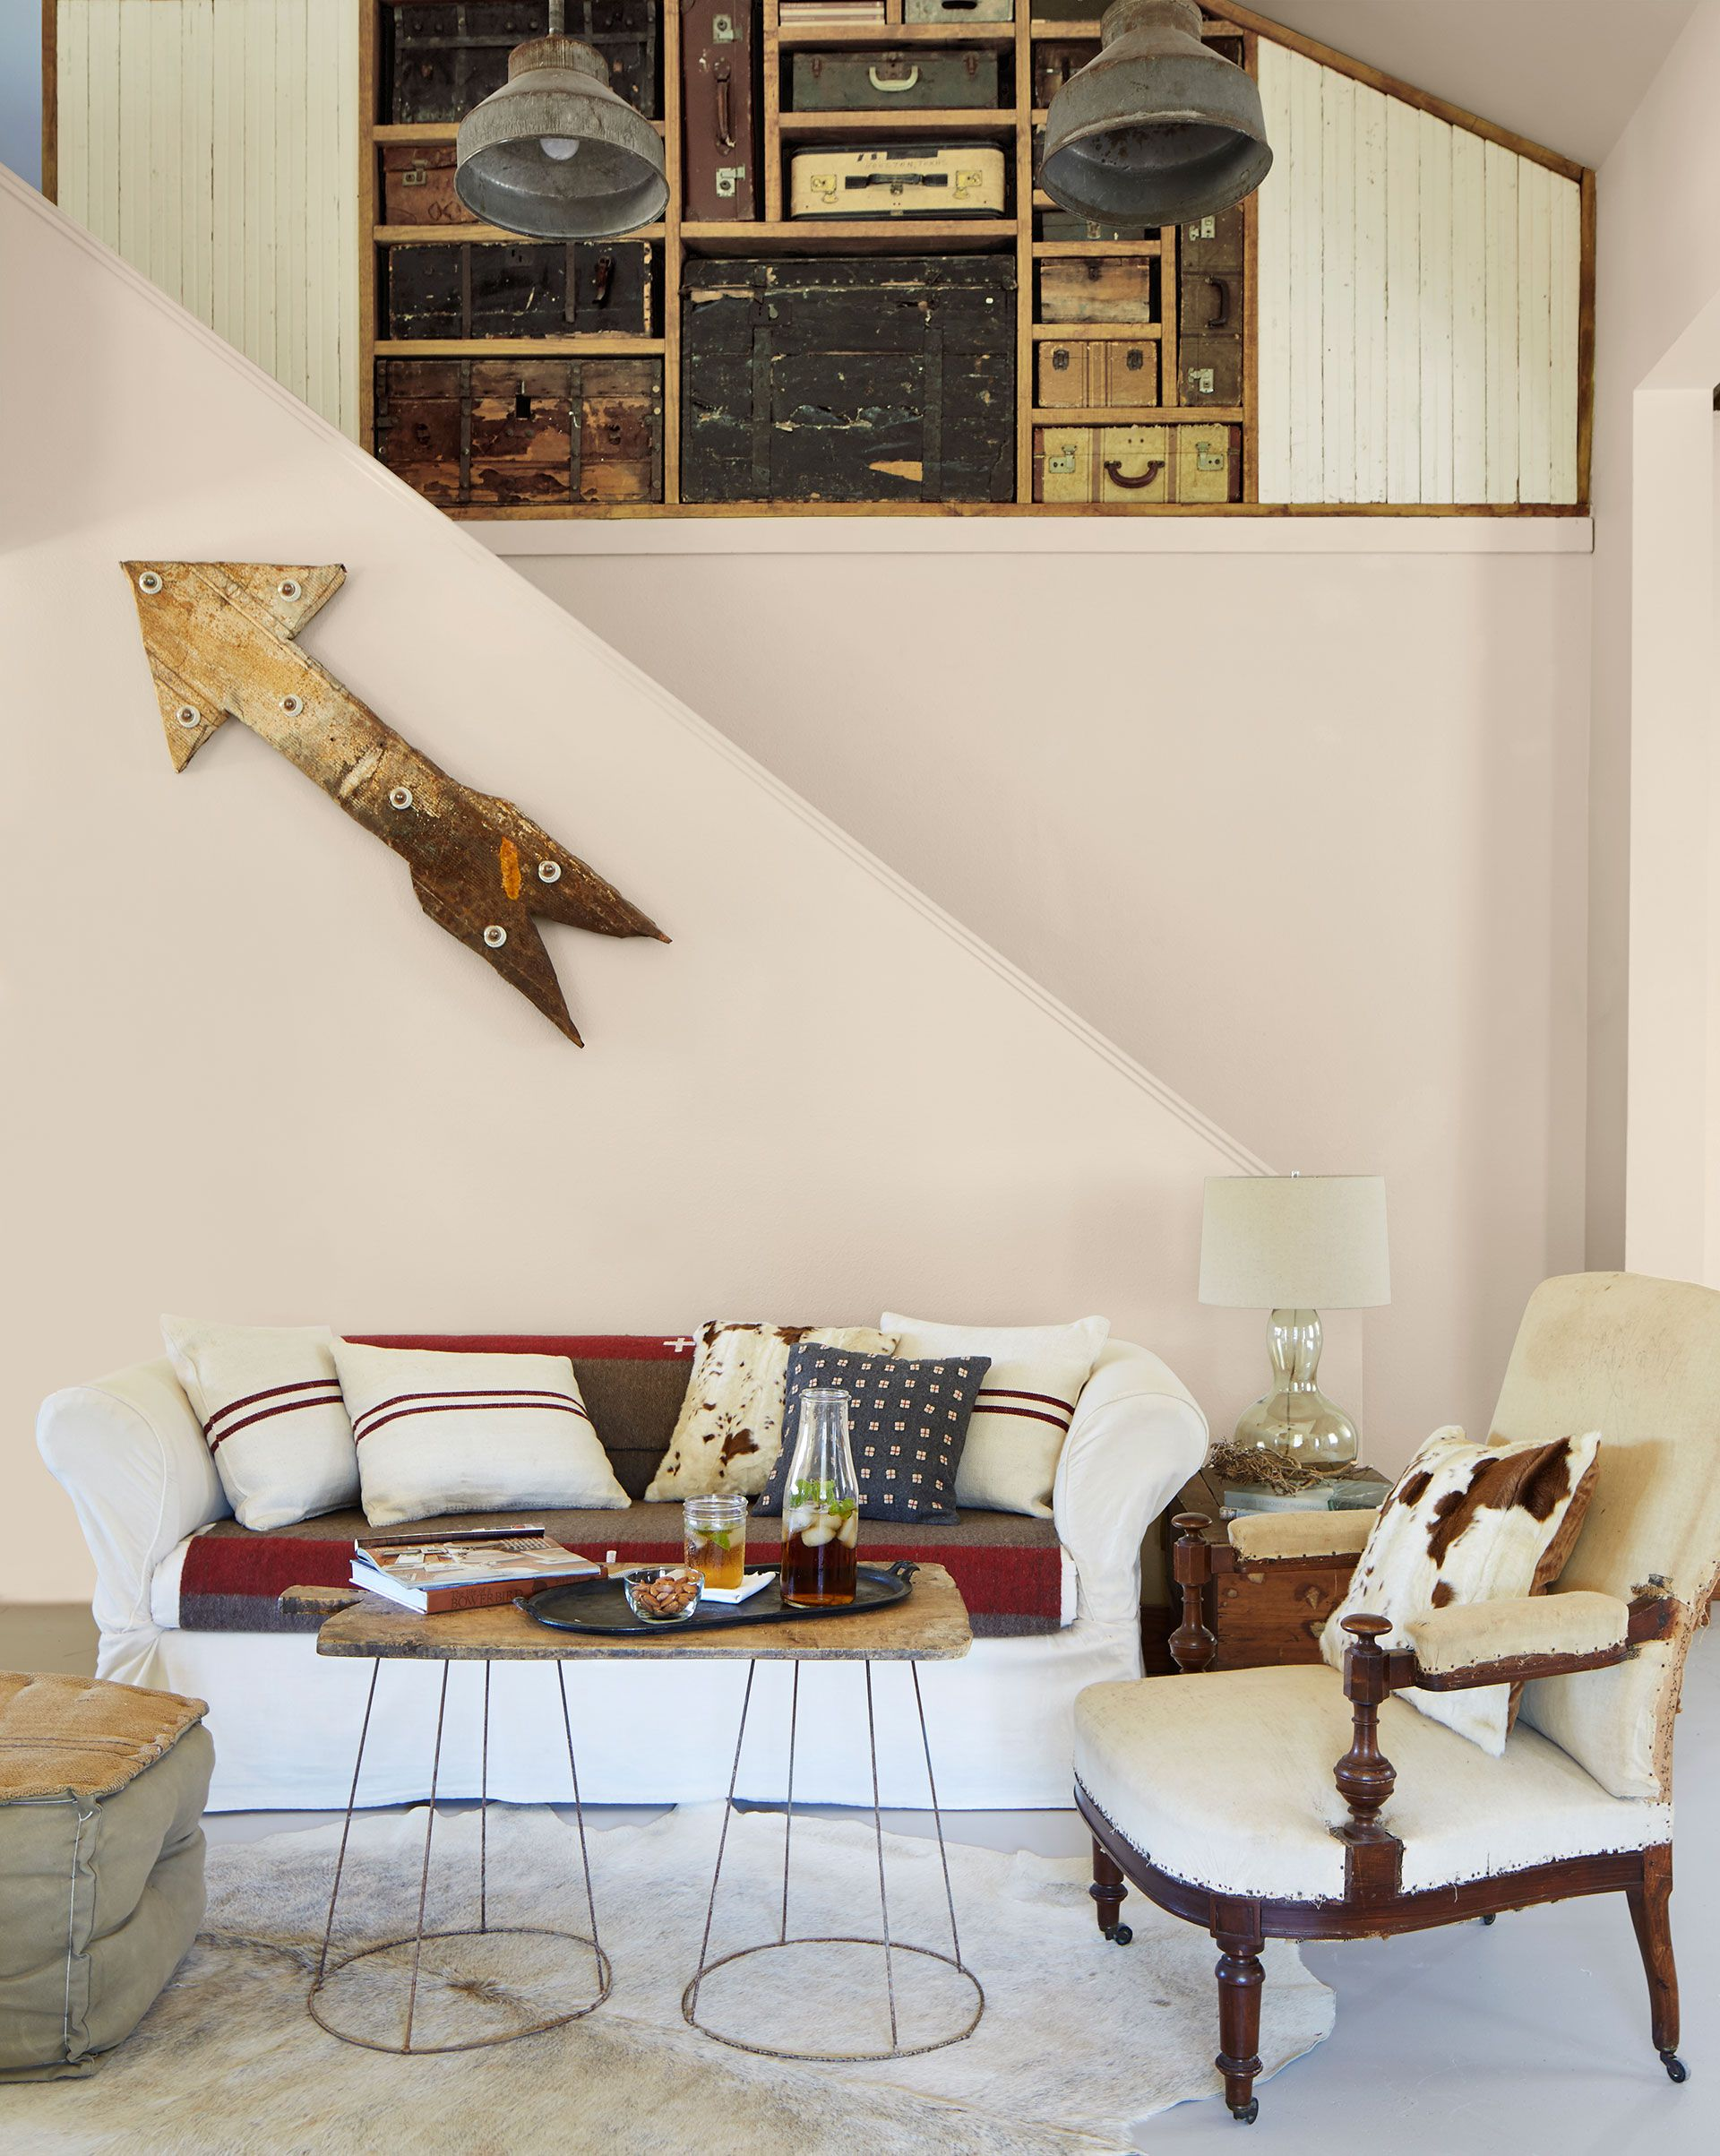 35 Clever Ways to Upcycle Flea Market Finds Into Stylish Home Decor ...